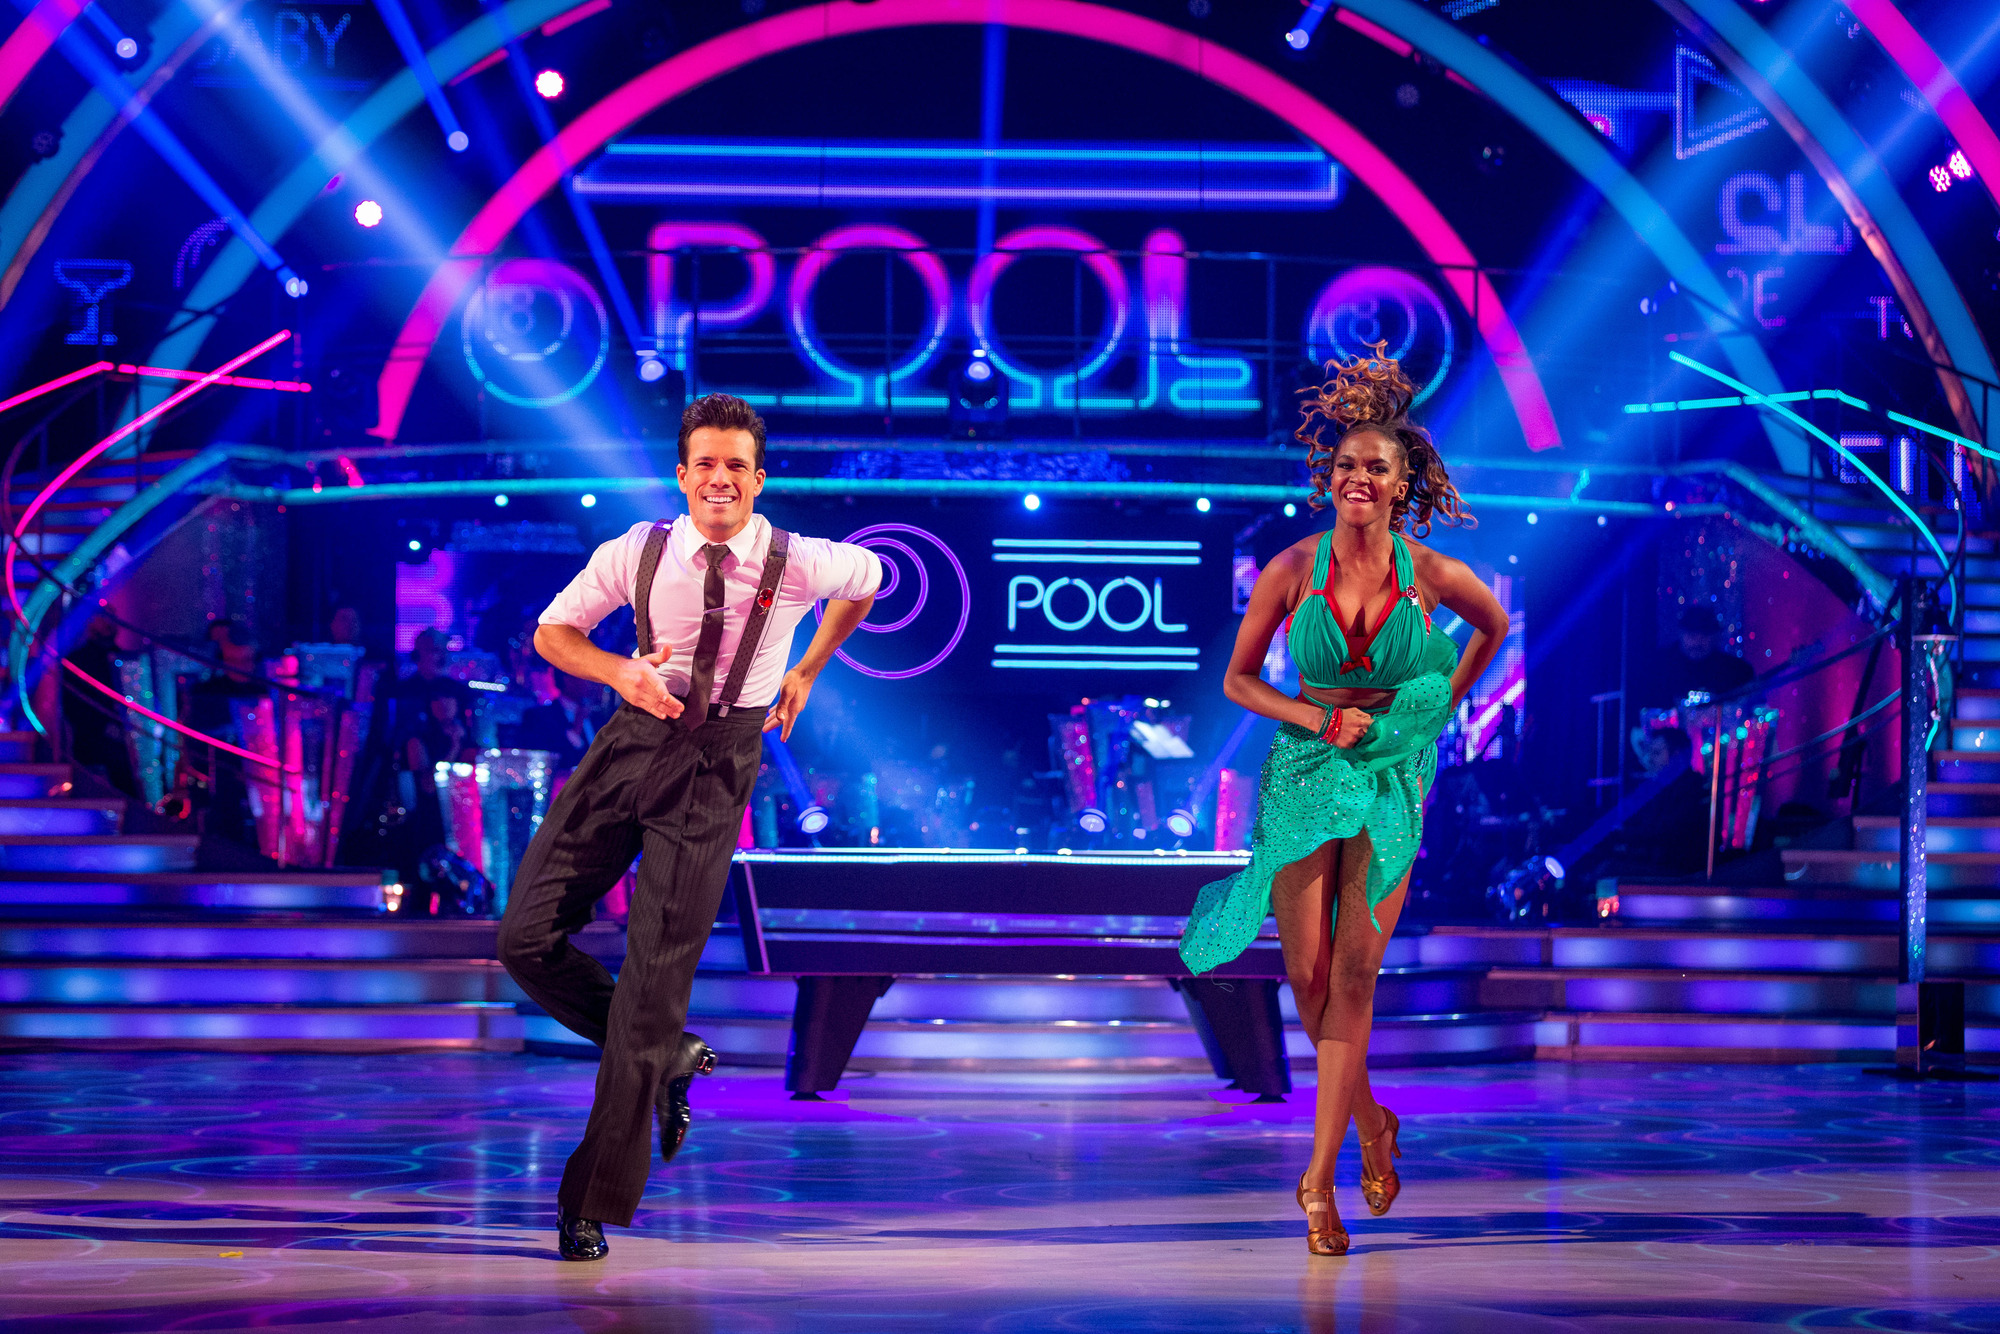 Strictly Come Dancing 2016: Danny Mac receives his first 10's of the series